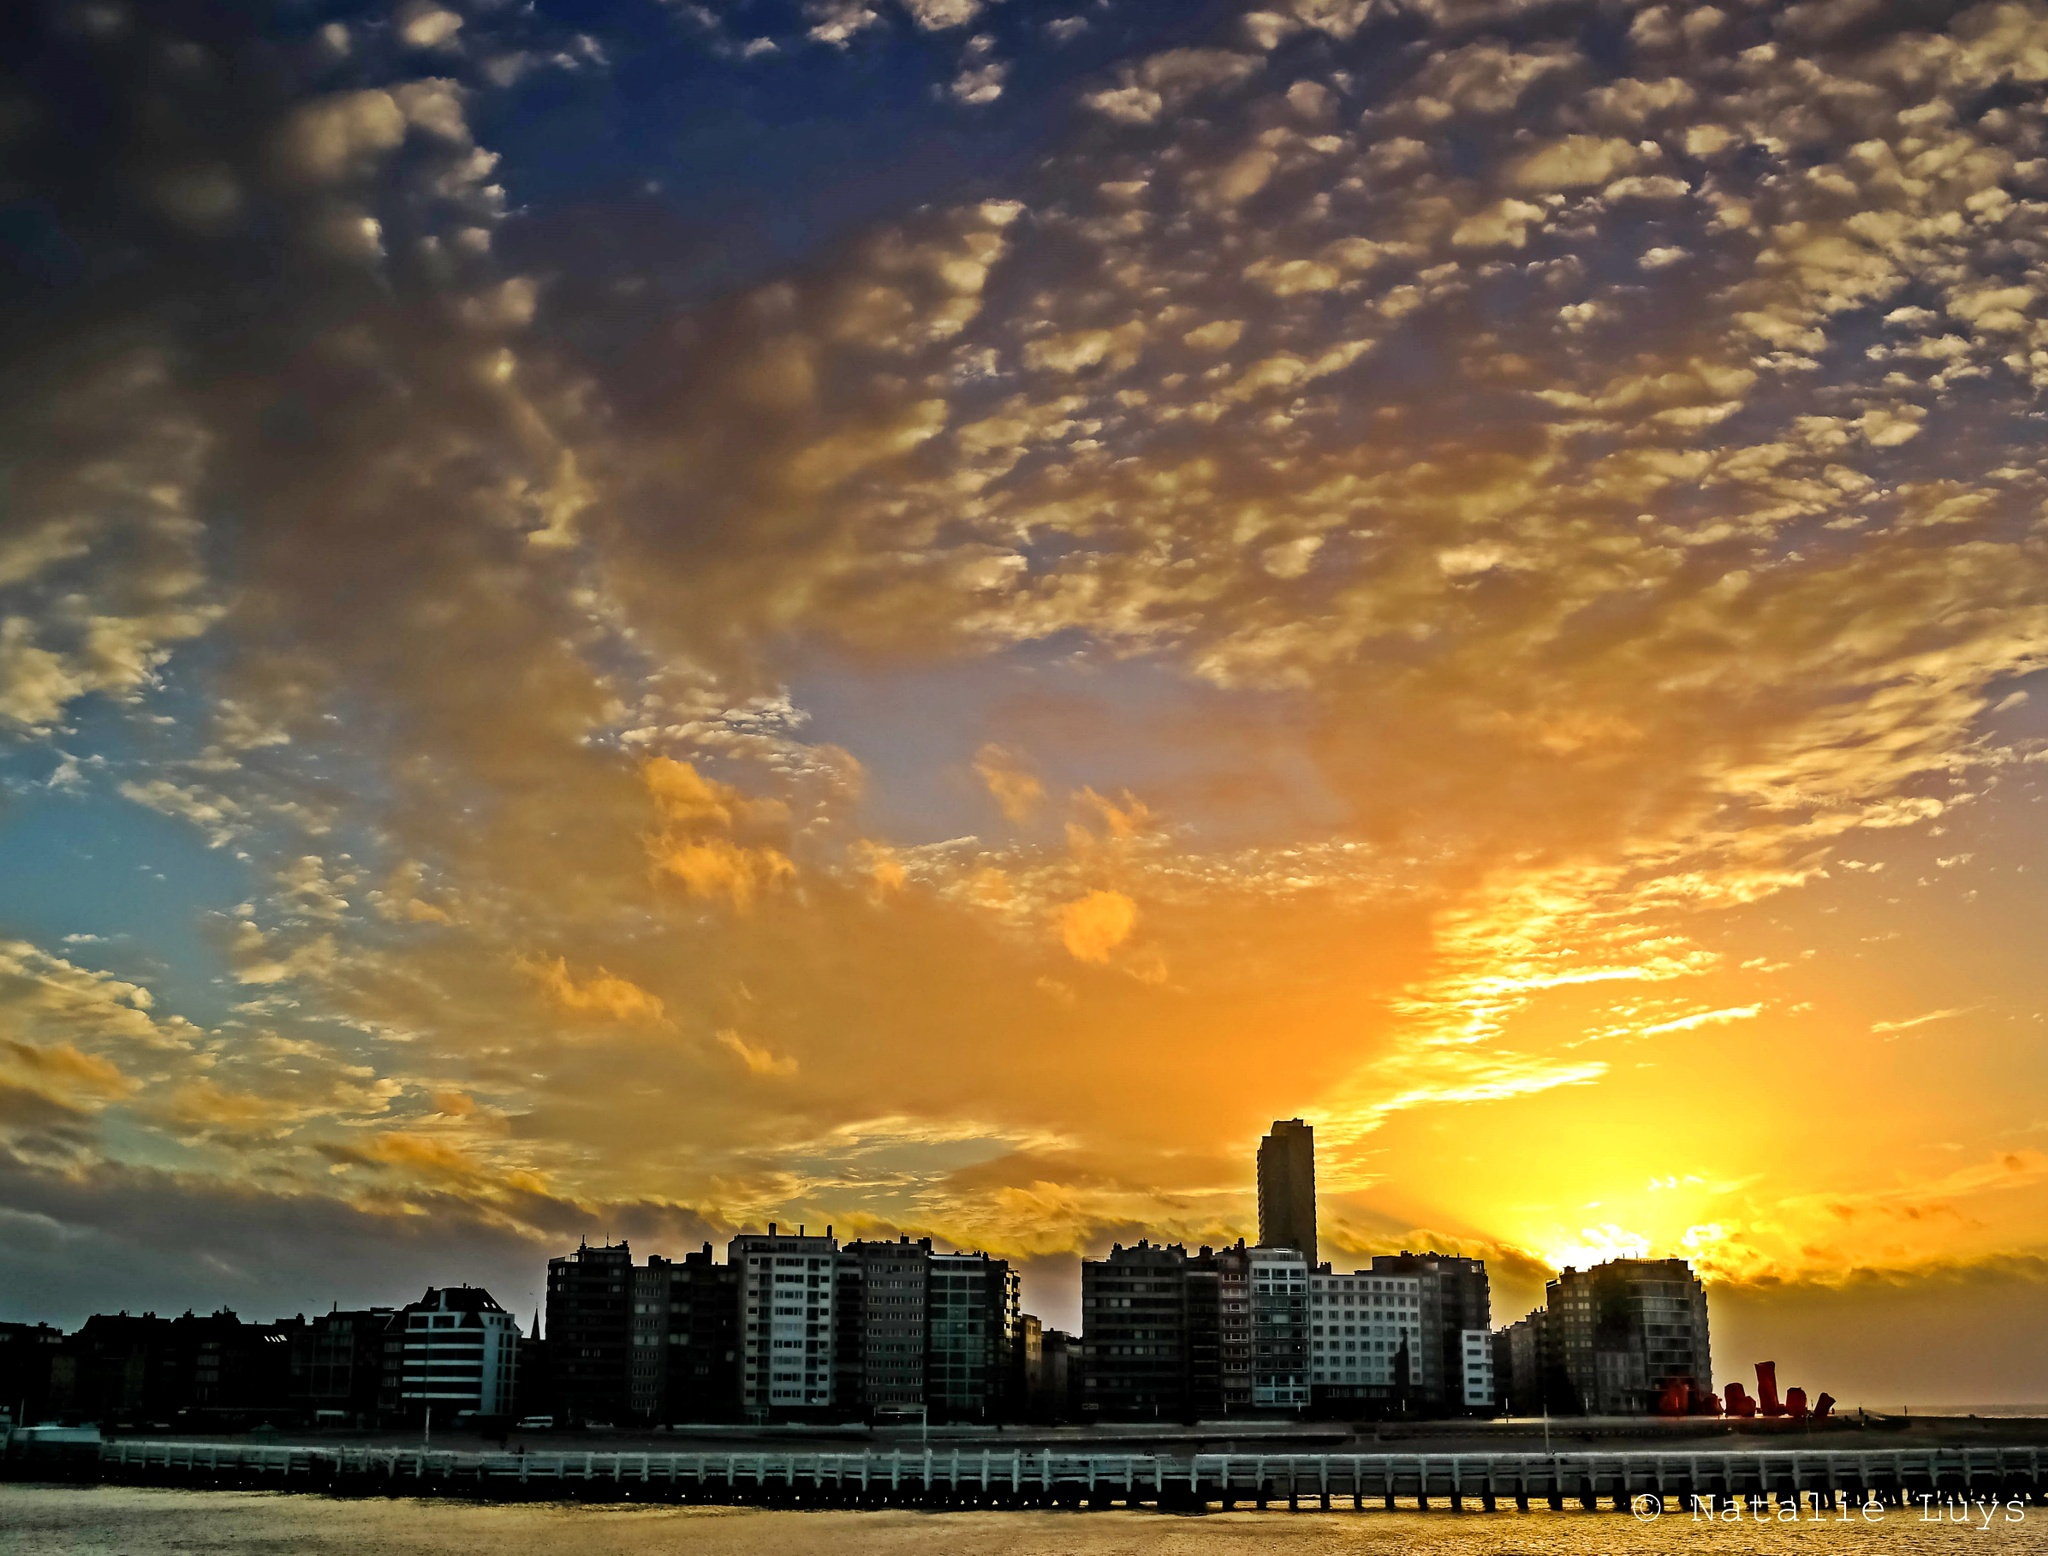 SUNSET OVER THE CITY by Natalie Luys